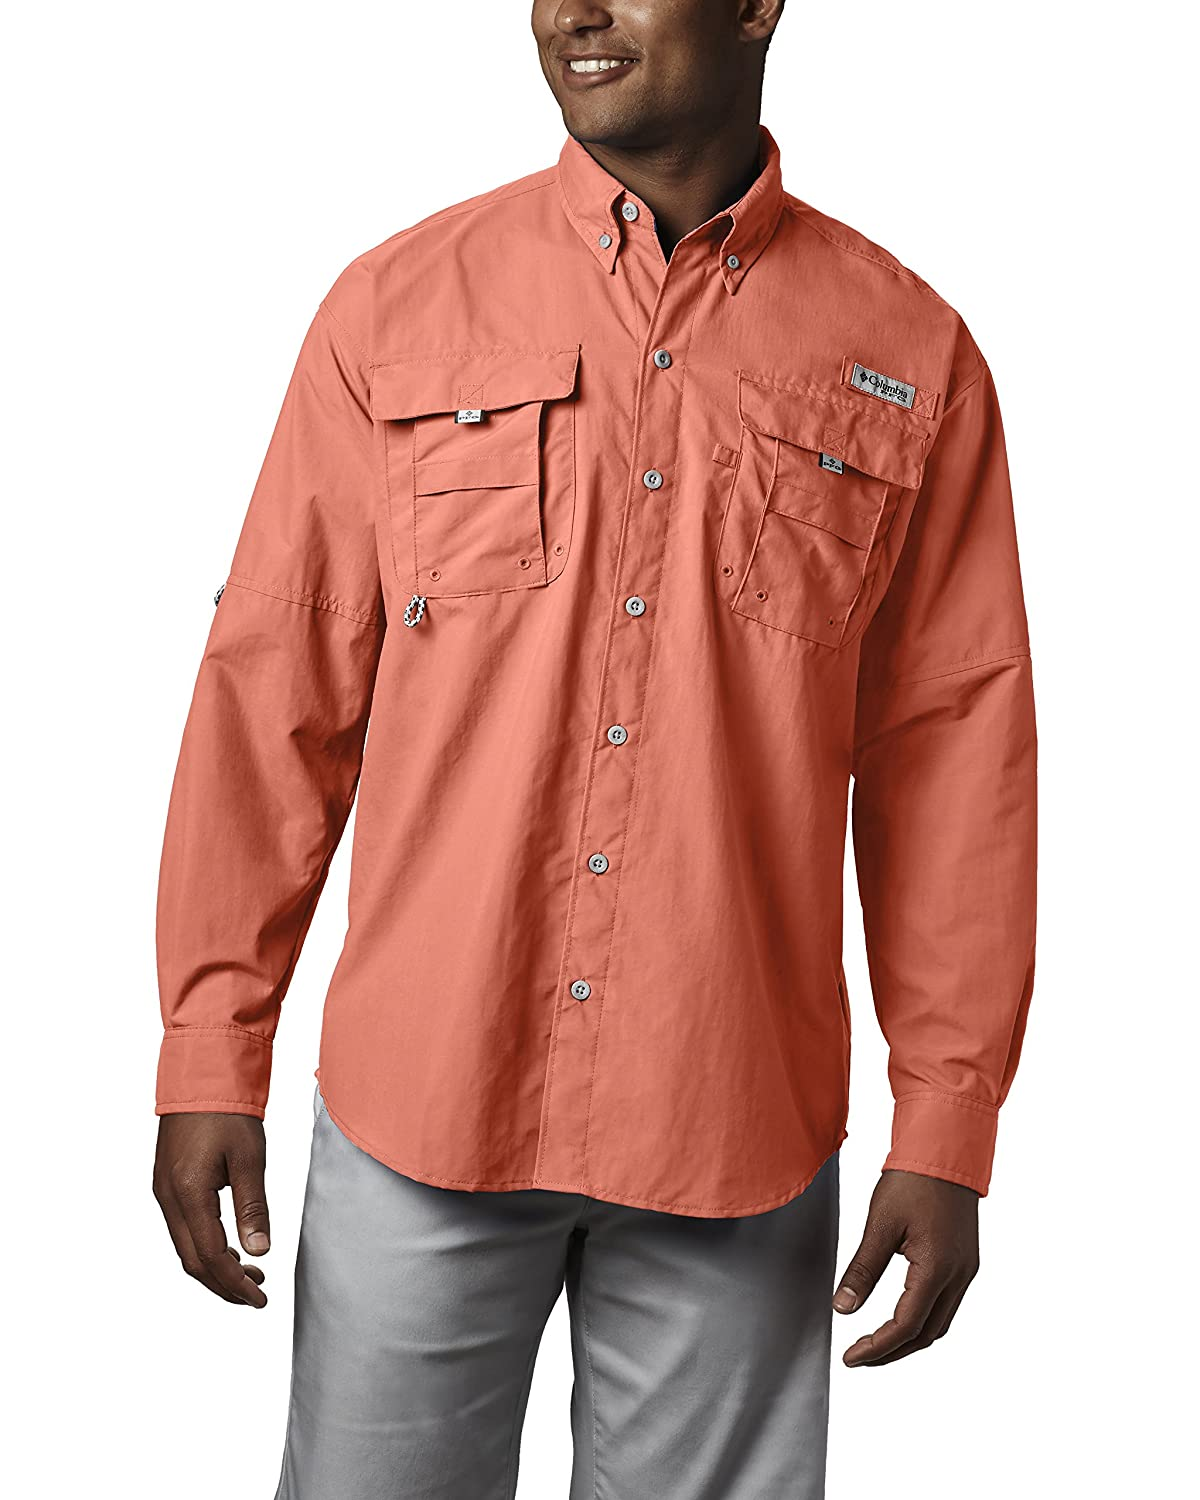 Columbia Men's Bahama II Long Sleeve Shirt - Big & Tall Columbia Sportswear FT7048-707